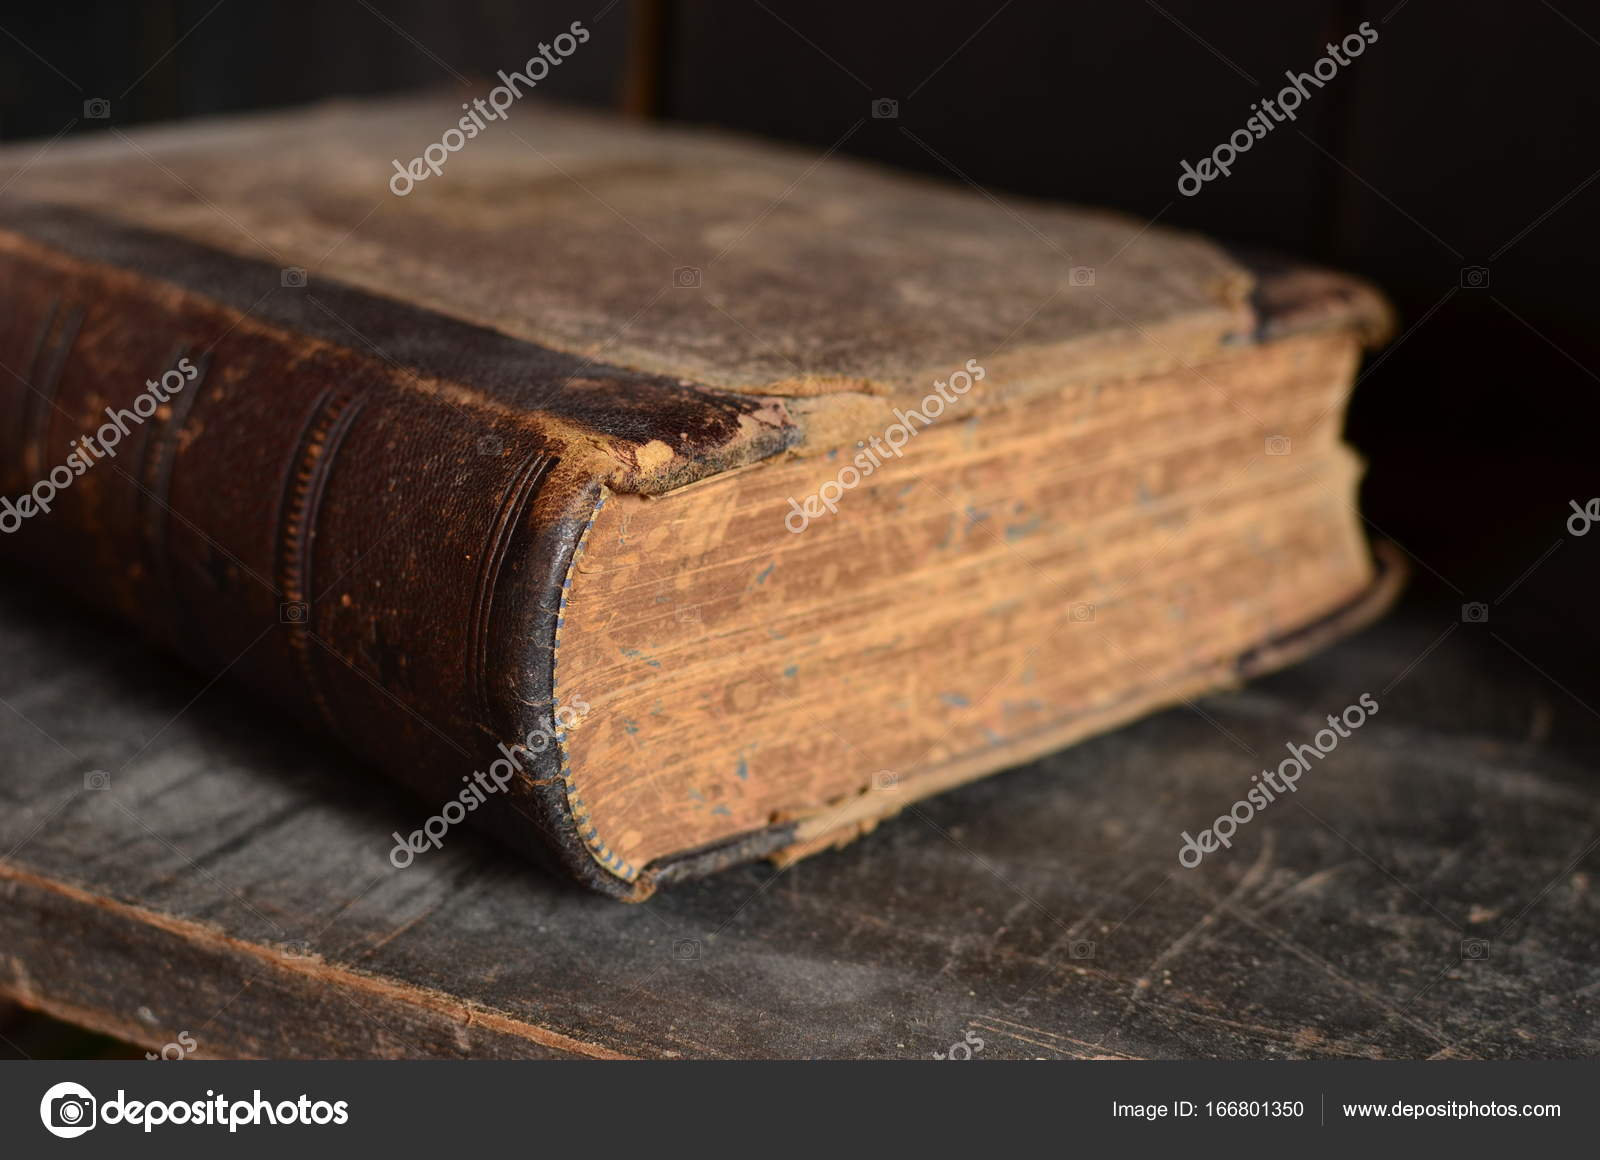 Old Leather Bound Book Laying On A Dusty Wooden Bookshelf Stock Photo